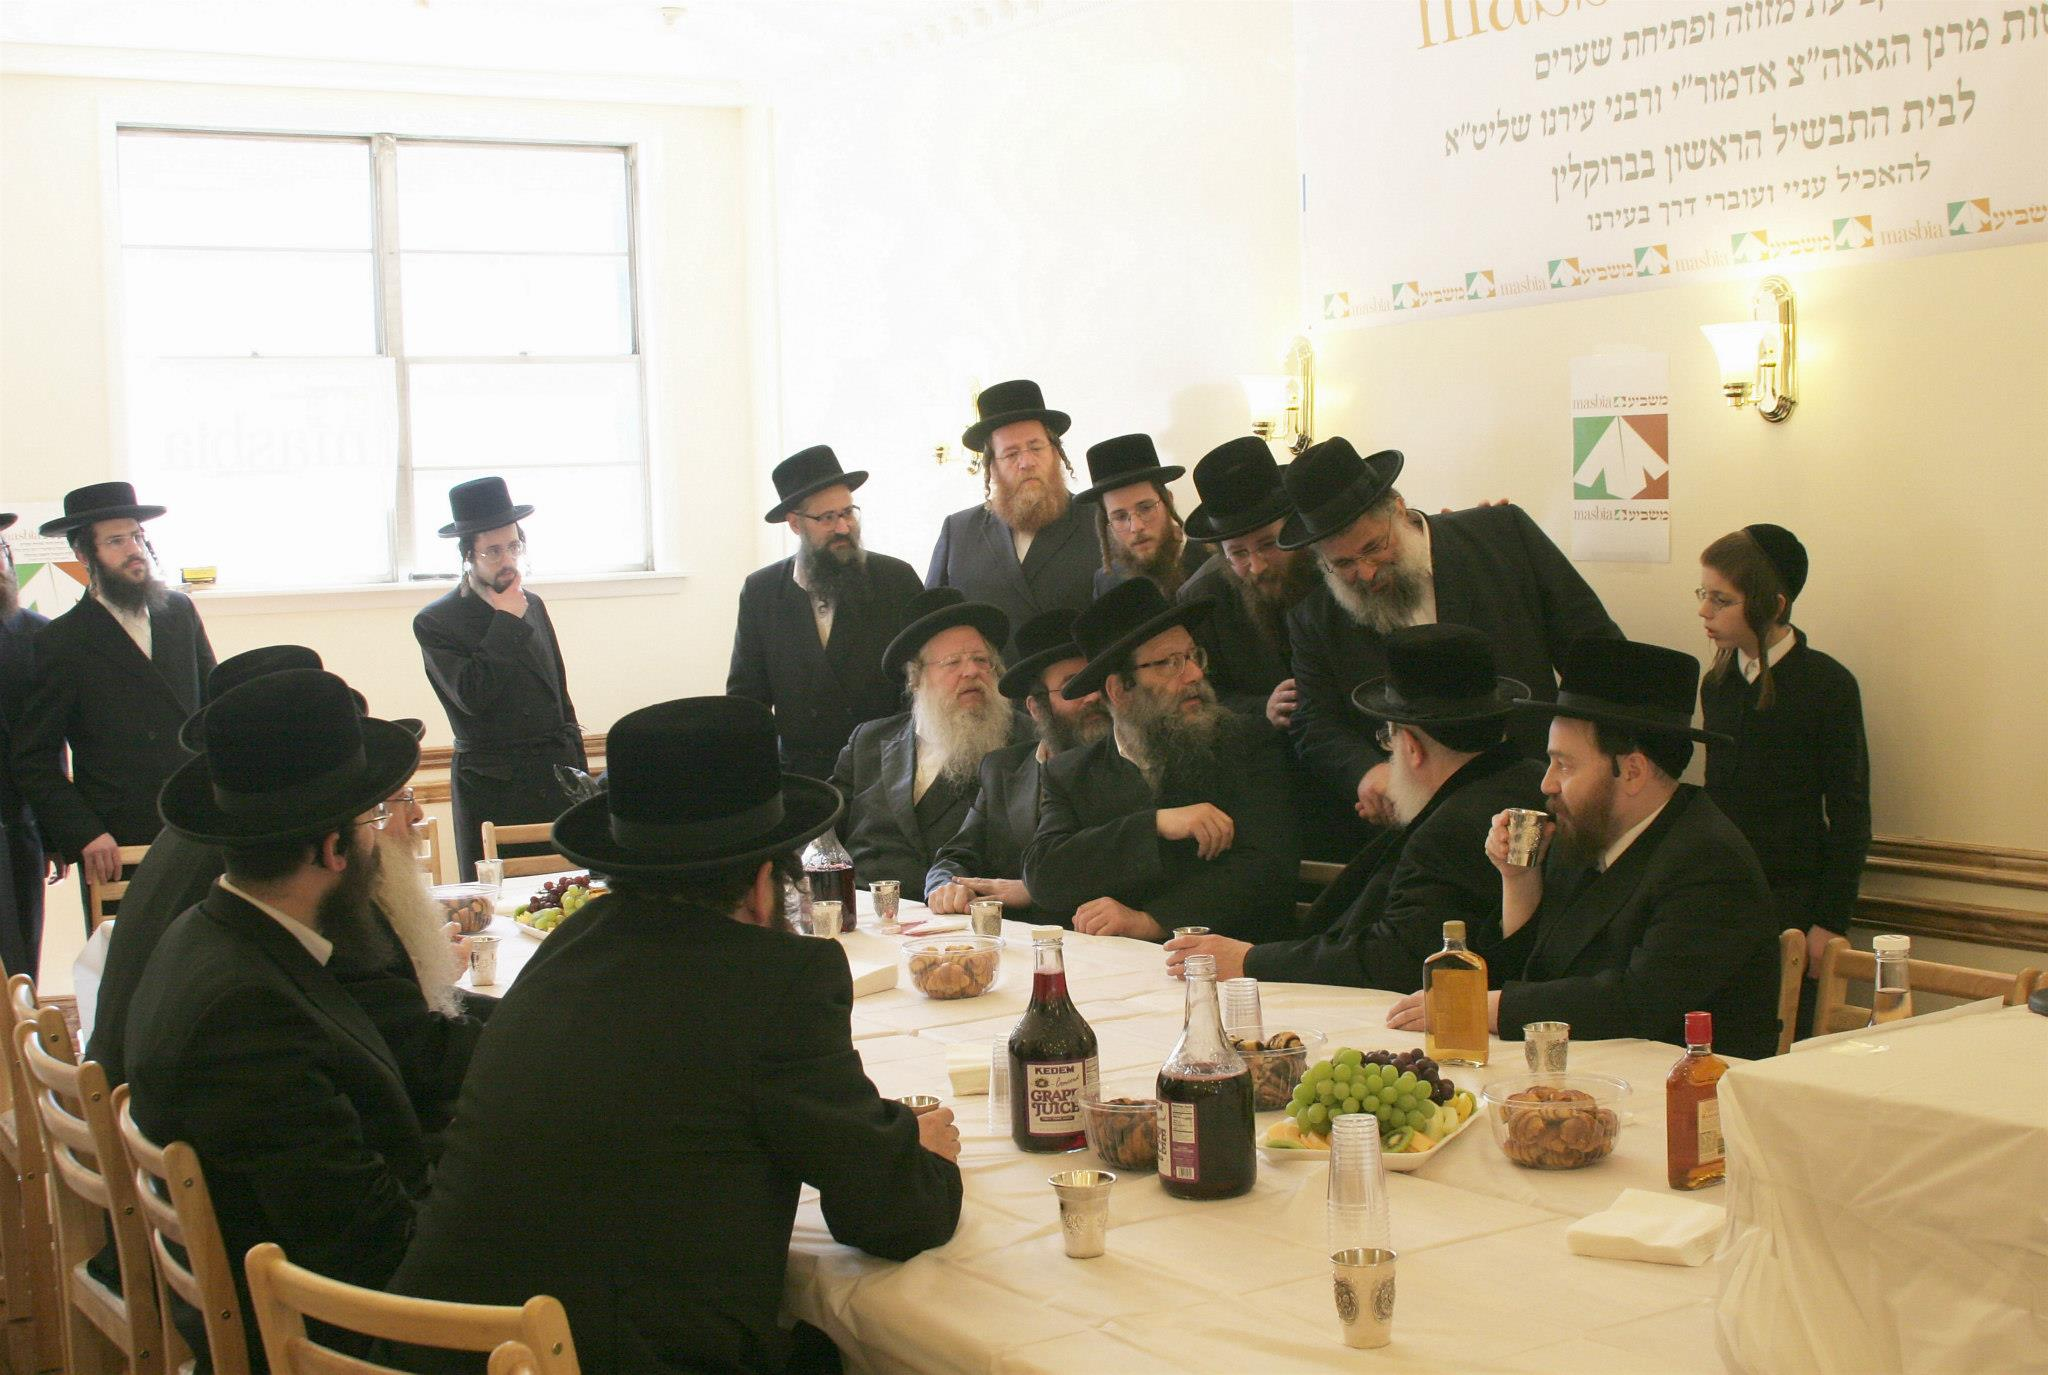 Masbia_Supporter__Rachmastrivka_Rebbe__Rabbi_Chai_Yitzchok_Twersky_Affixing_the_Mezuzah_at_Masbia_of_Boro_Park2.jpg